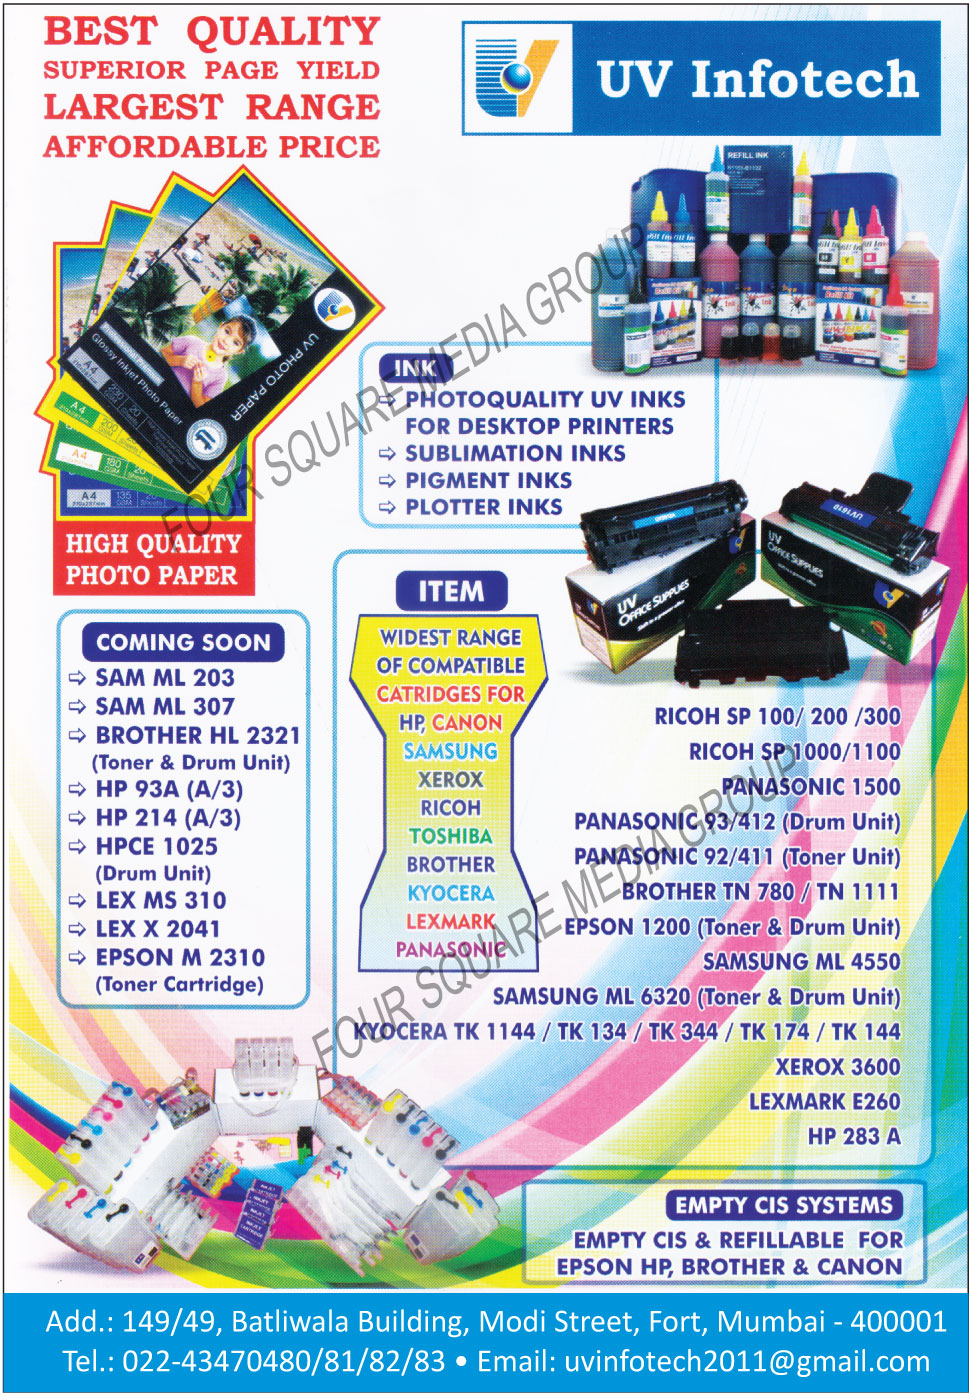 Photo Papers, UV Inks, Sublimation Inks, Pigment Inks, Plotter Inks, Cartridges, Empty Ciss Systems